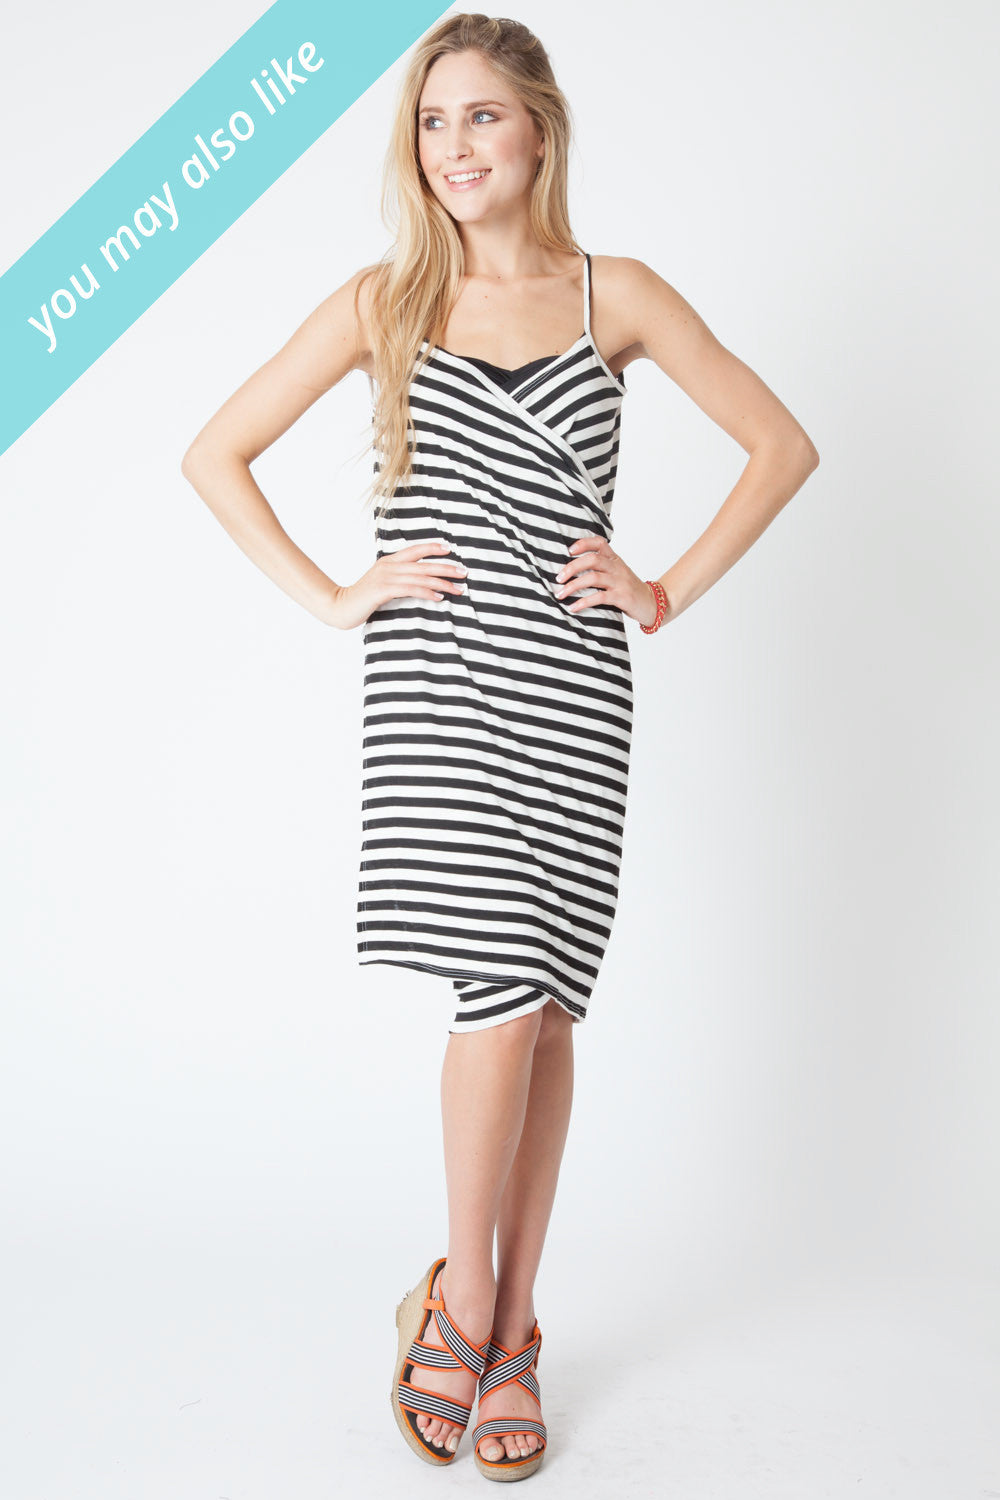 Convertible Beach Wrap Dress in Black and White Stripe